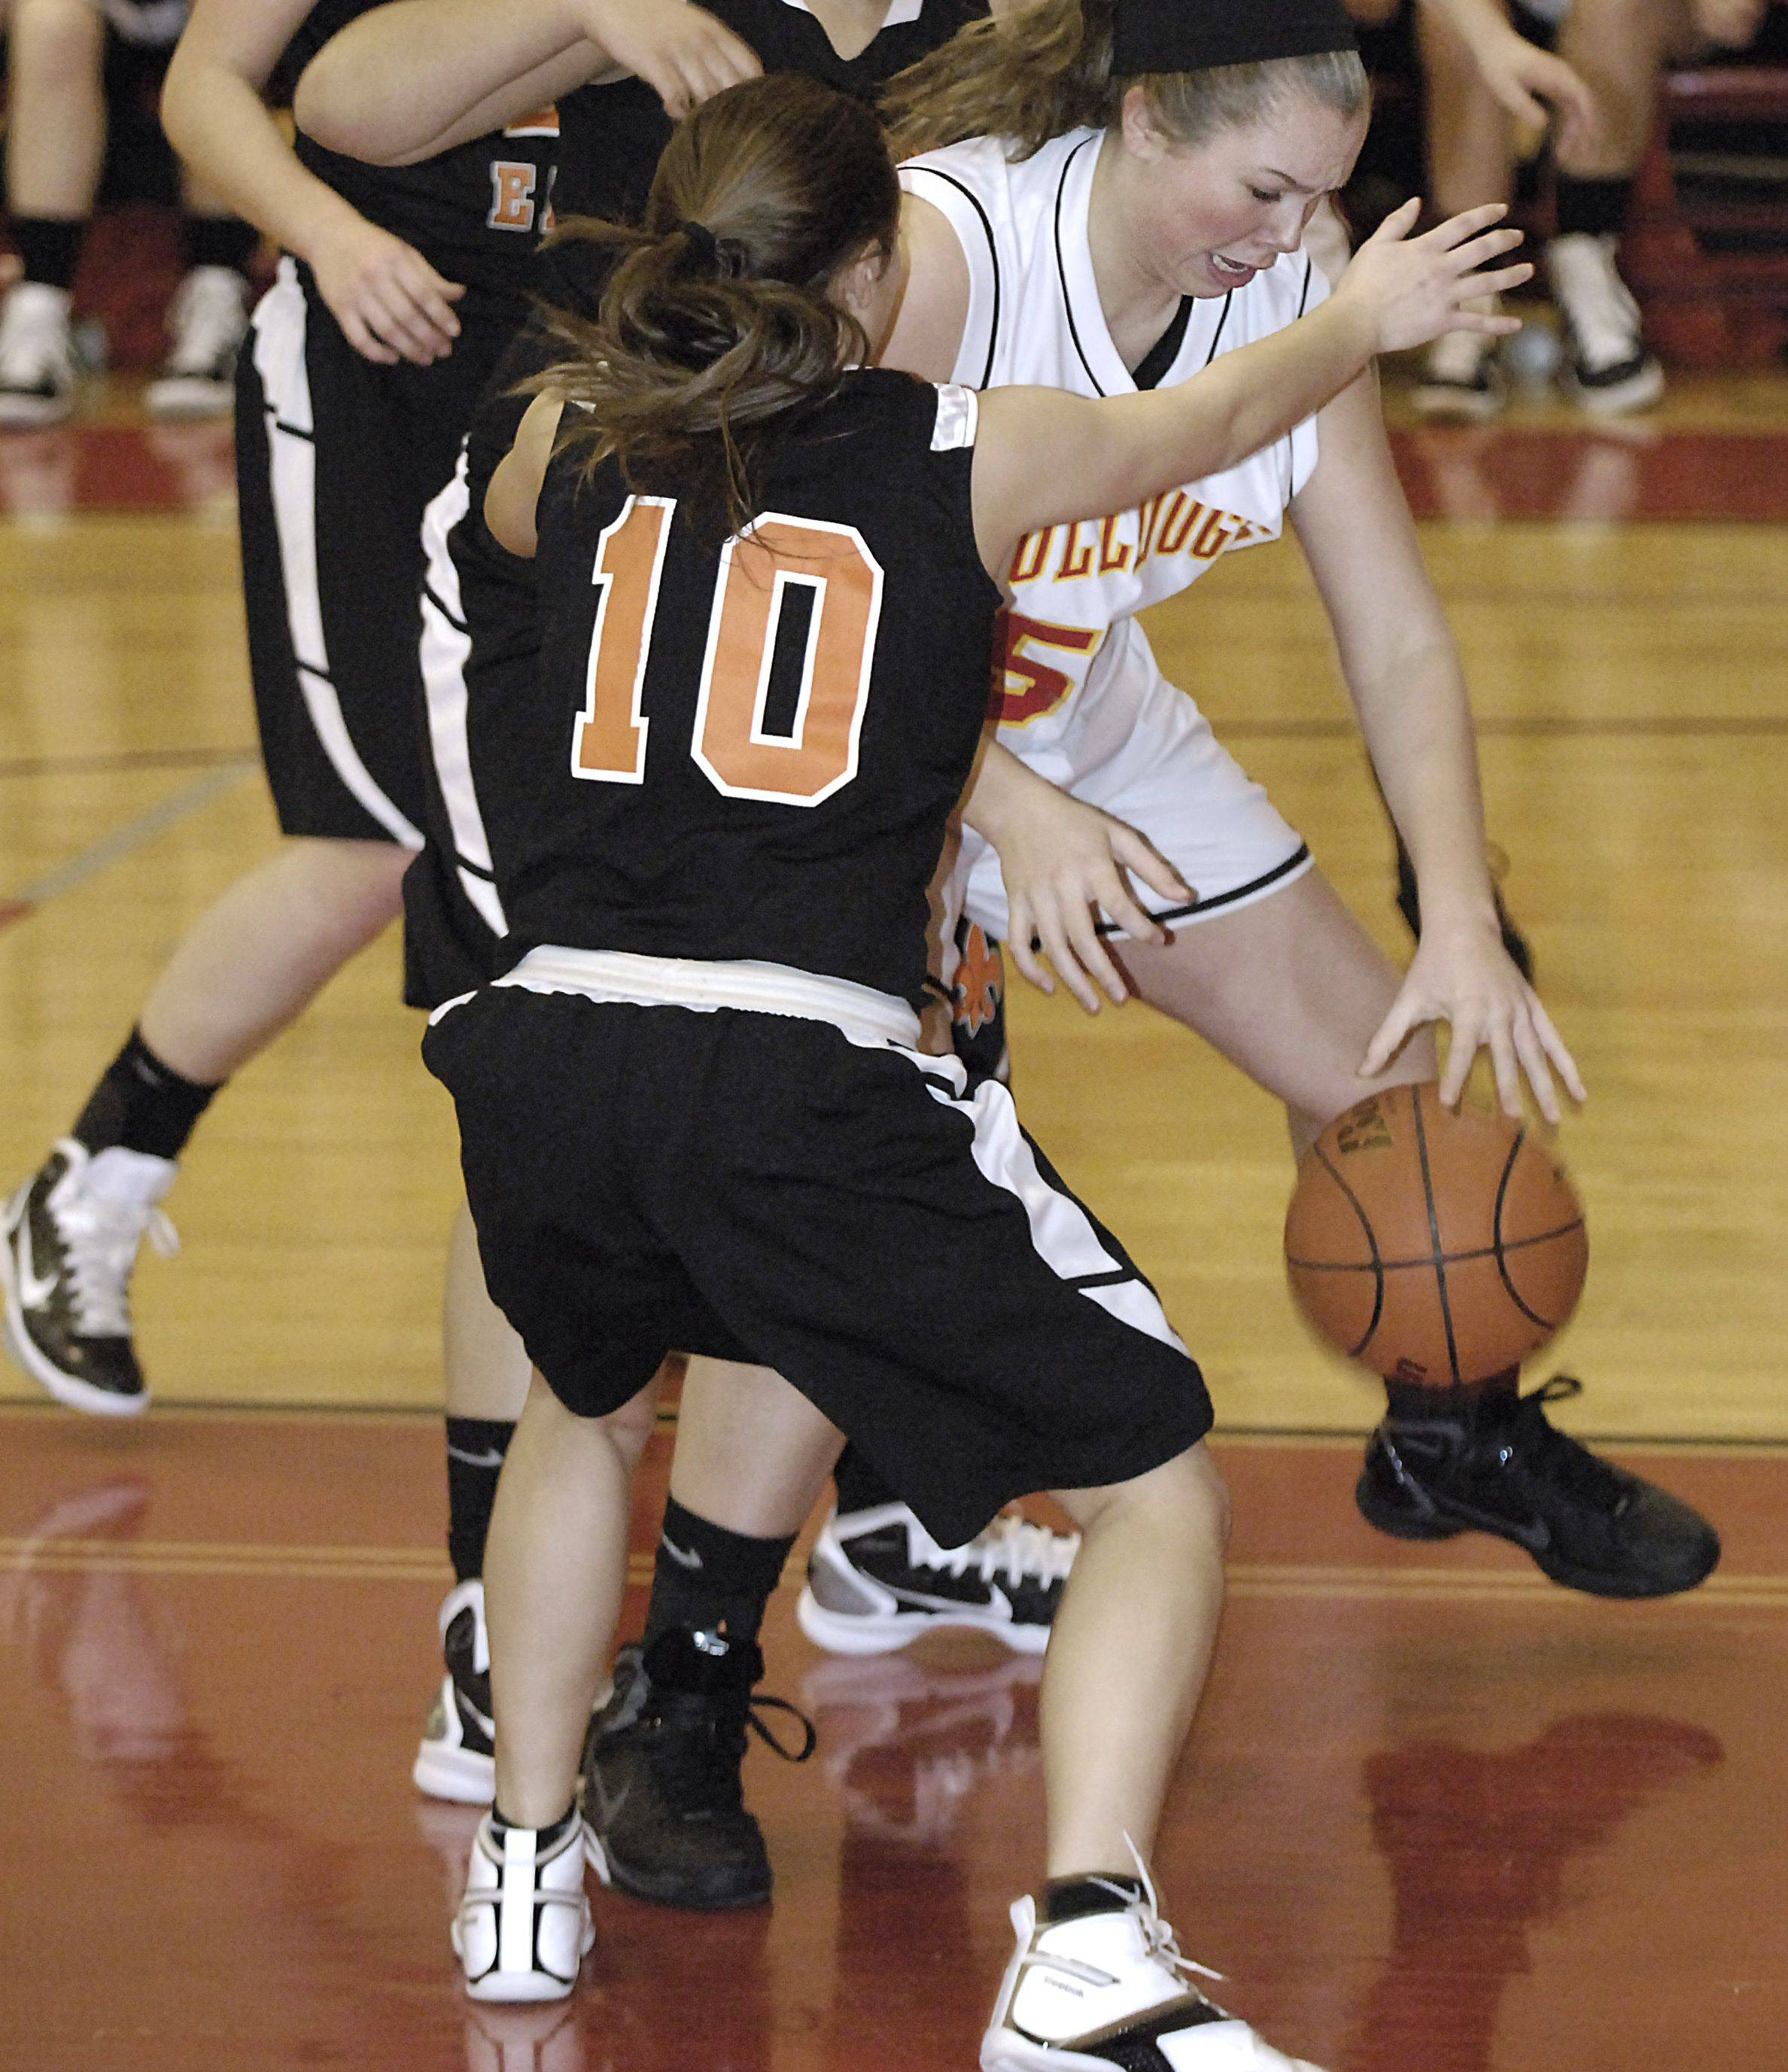 Basketball is just one of the three sports and countless activities for St. Charles East's Annie Martines (10).